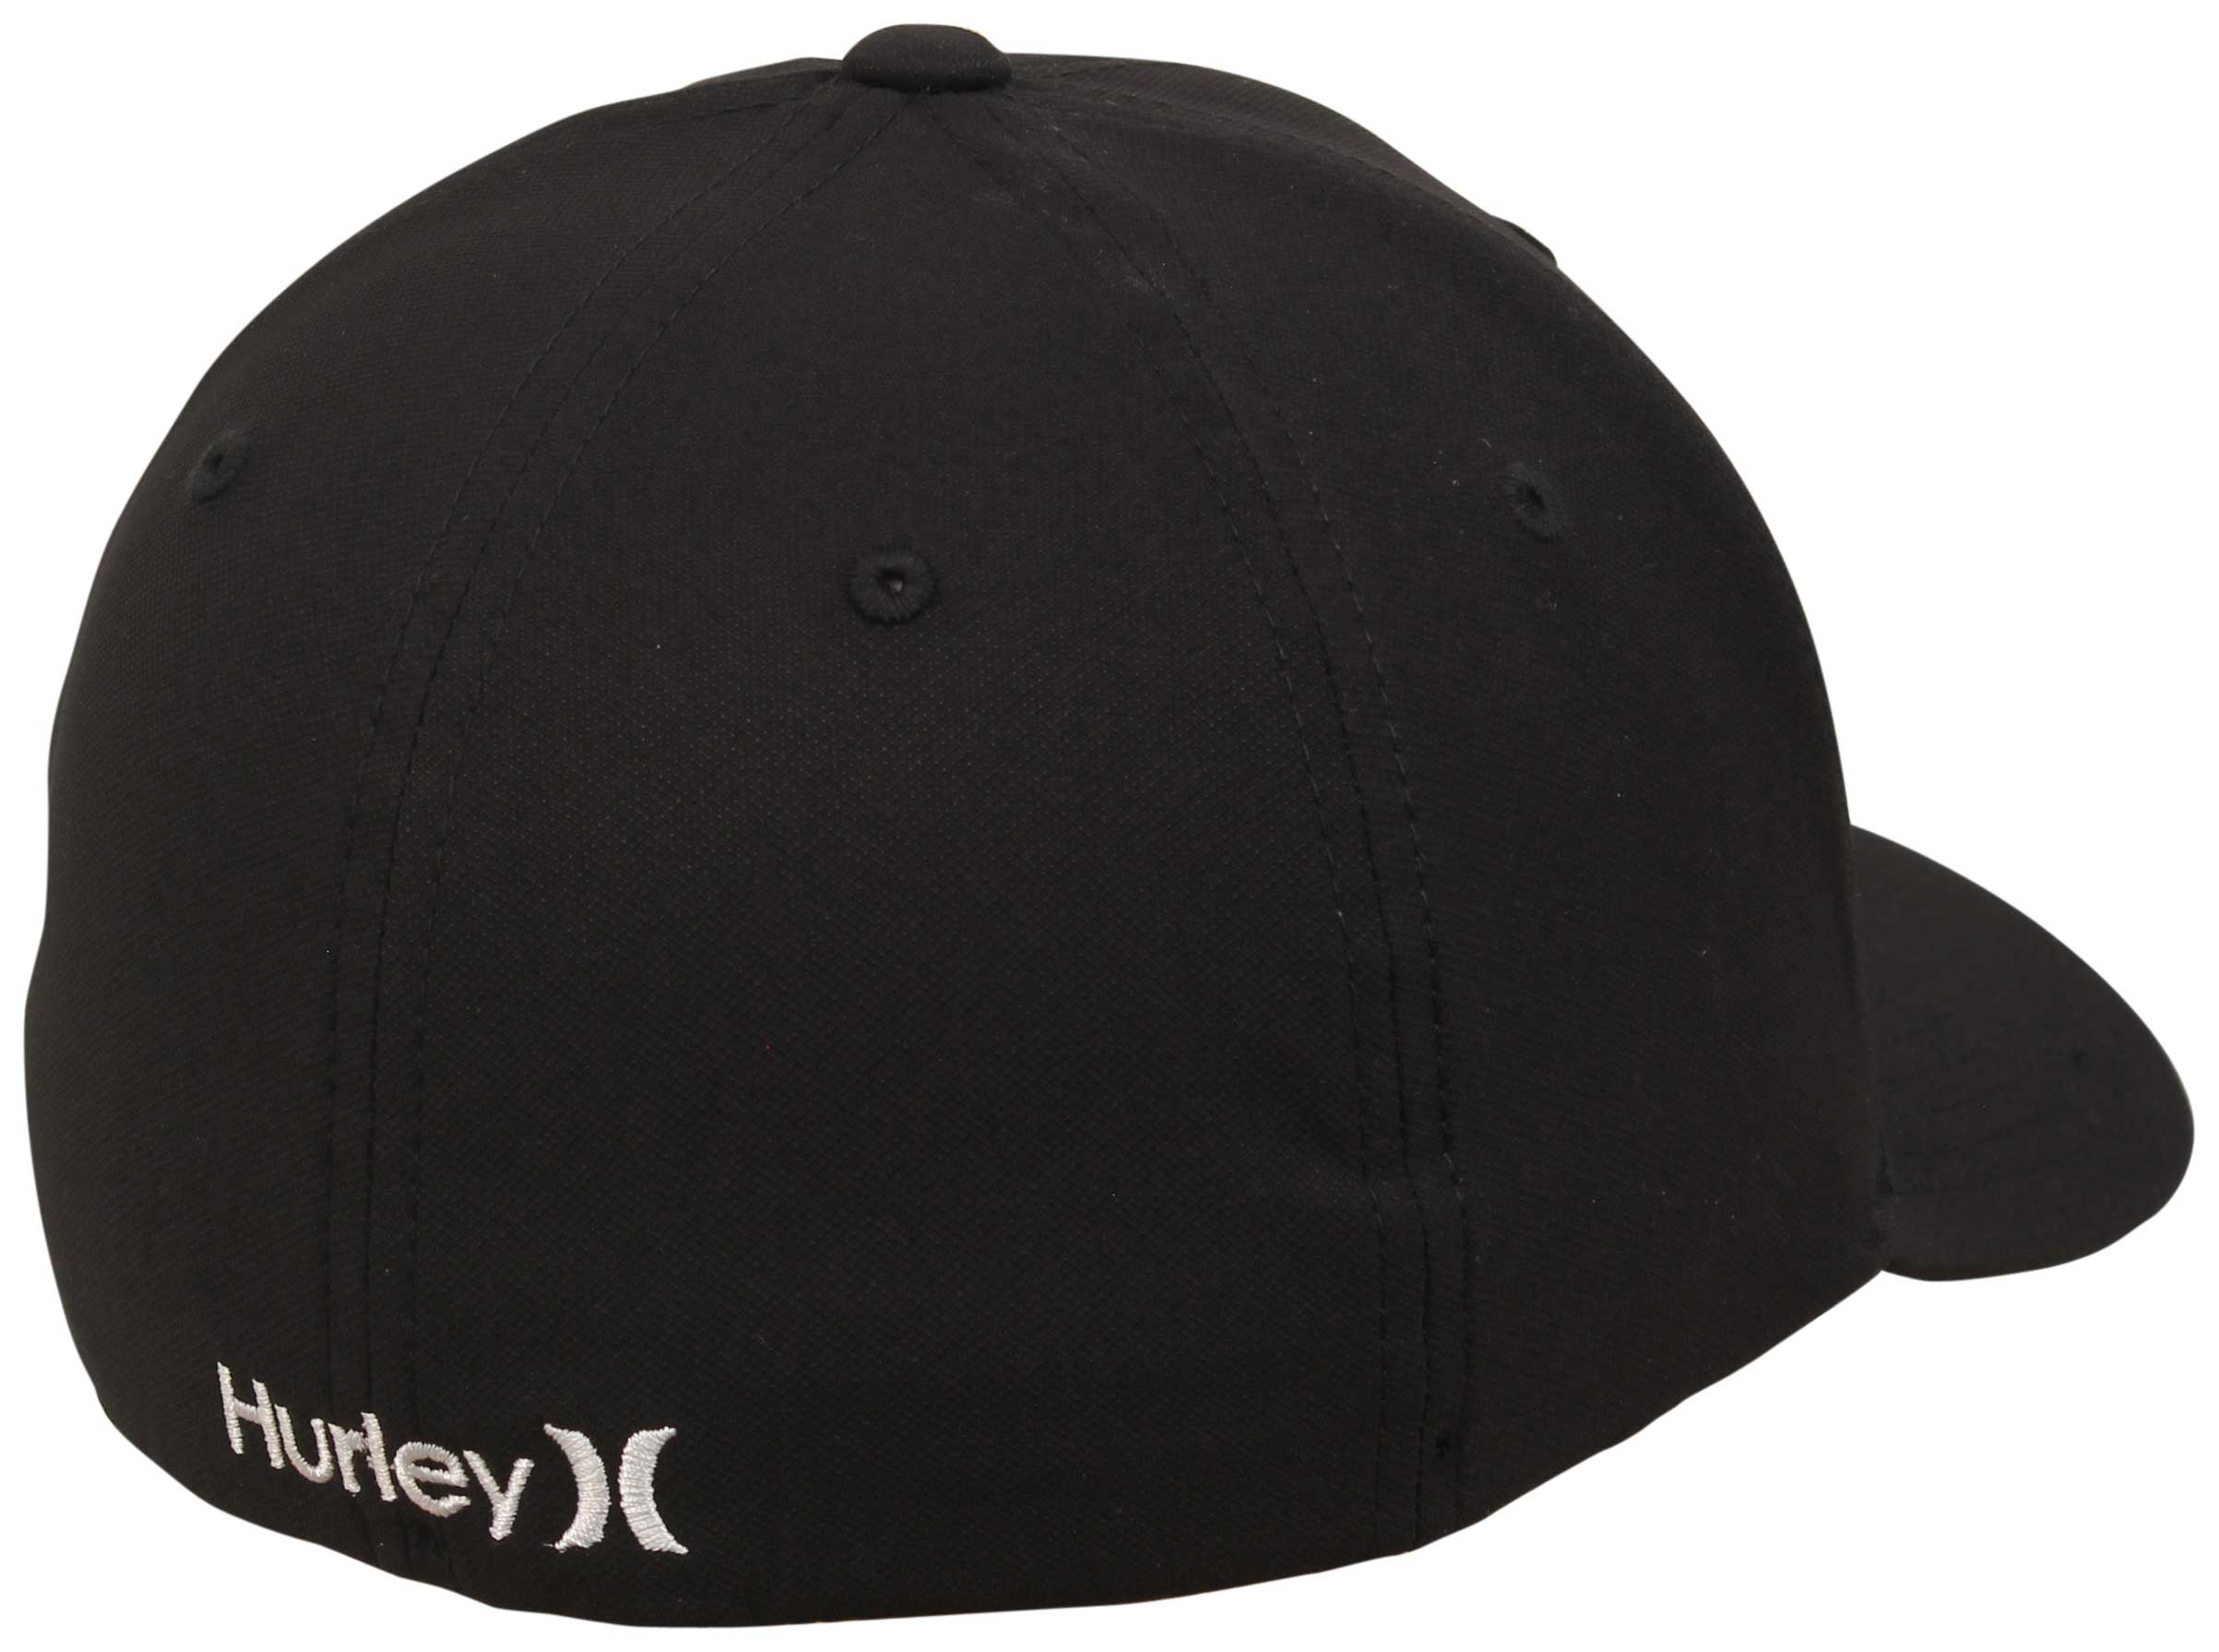 Hurley Dri-Fit One and Only Hat - Classic Black   White - New - 5dfdd6769698